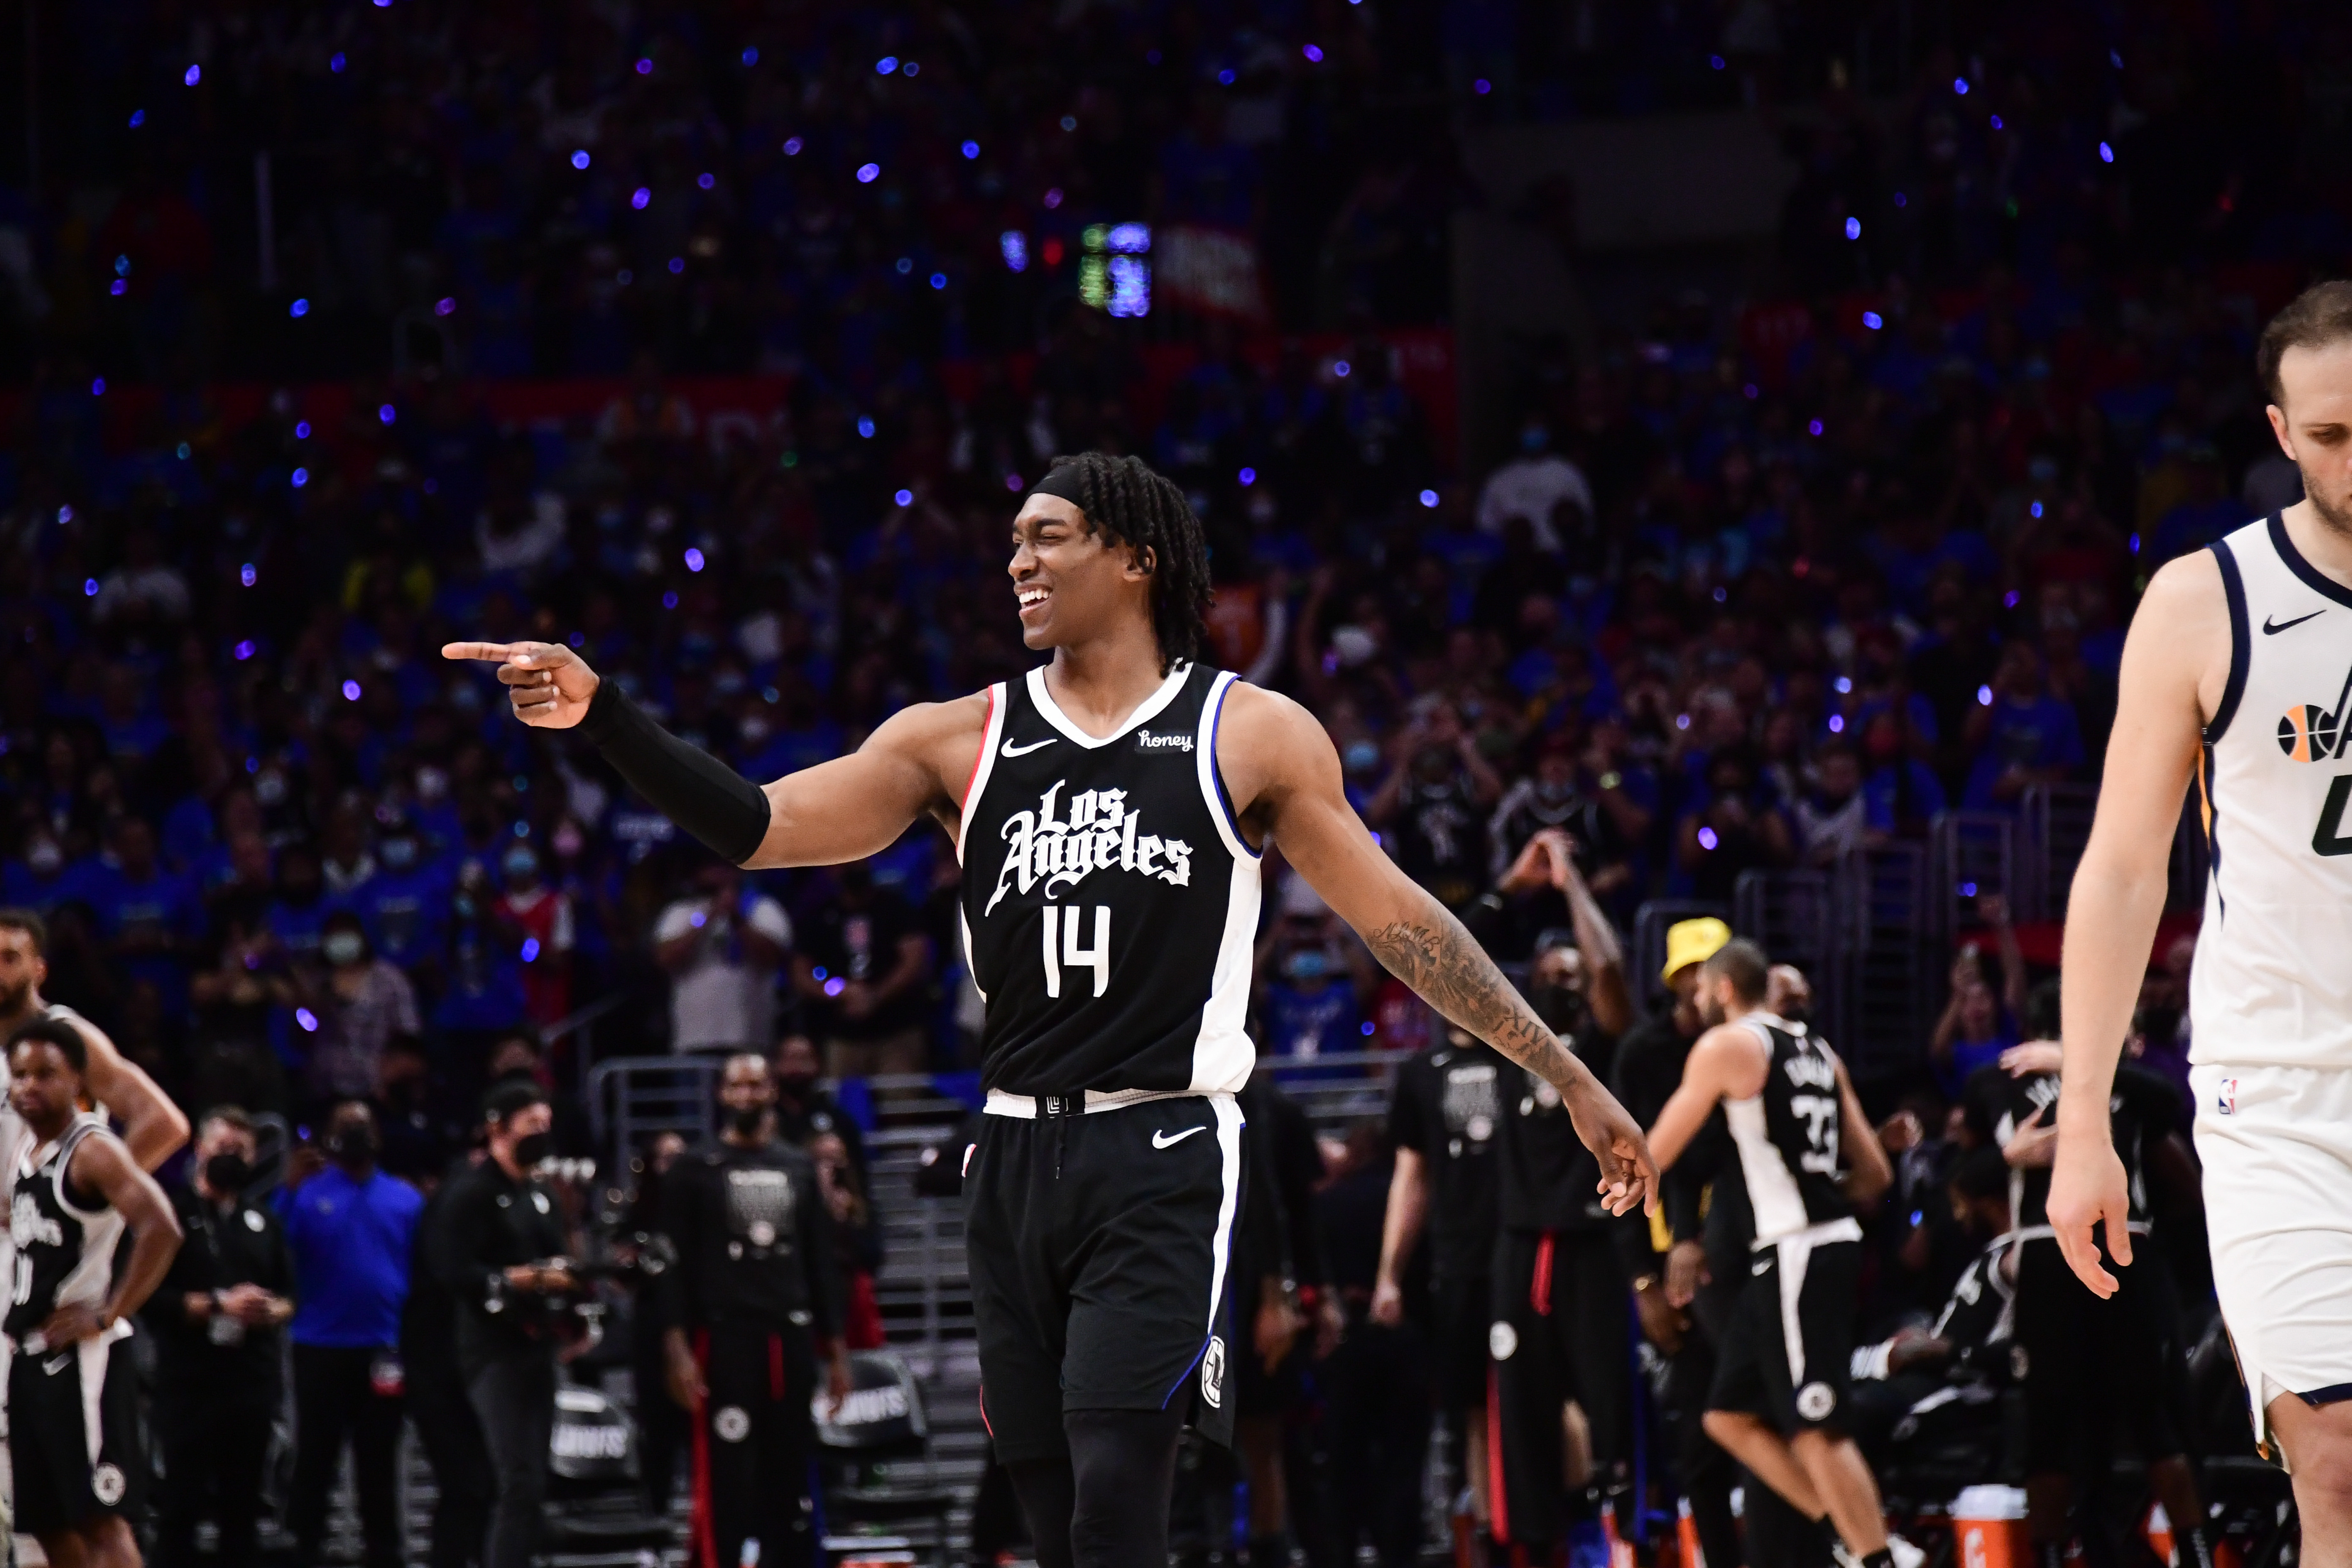 Terance Mann of the LA Clippers smiles during the game against the Utah Jazz during Round 2, Game 6 of the 2021 NBA Playoffs on June 18, 2021 at STAPLES Center in Los Angeles, California.